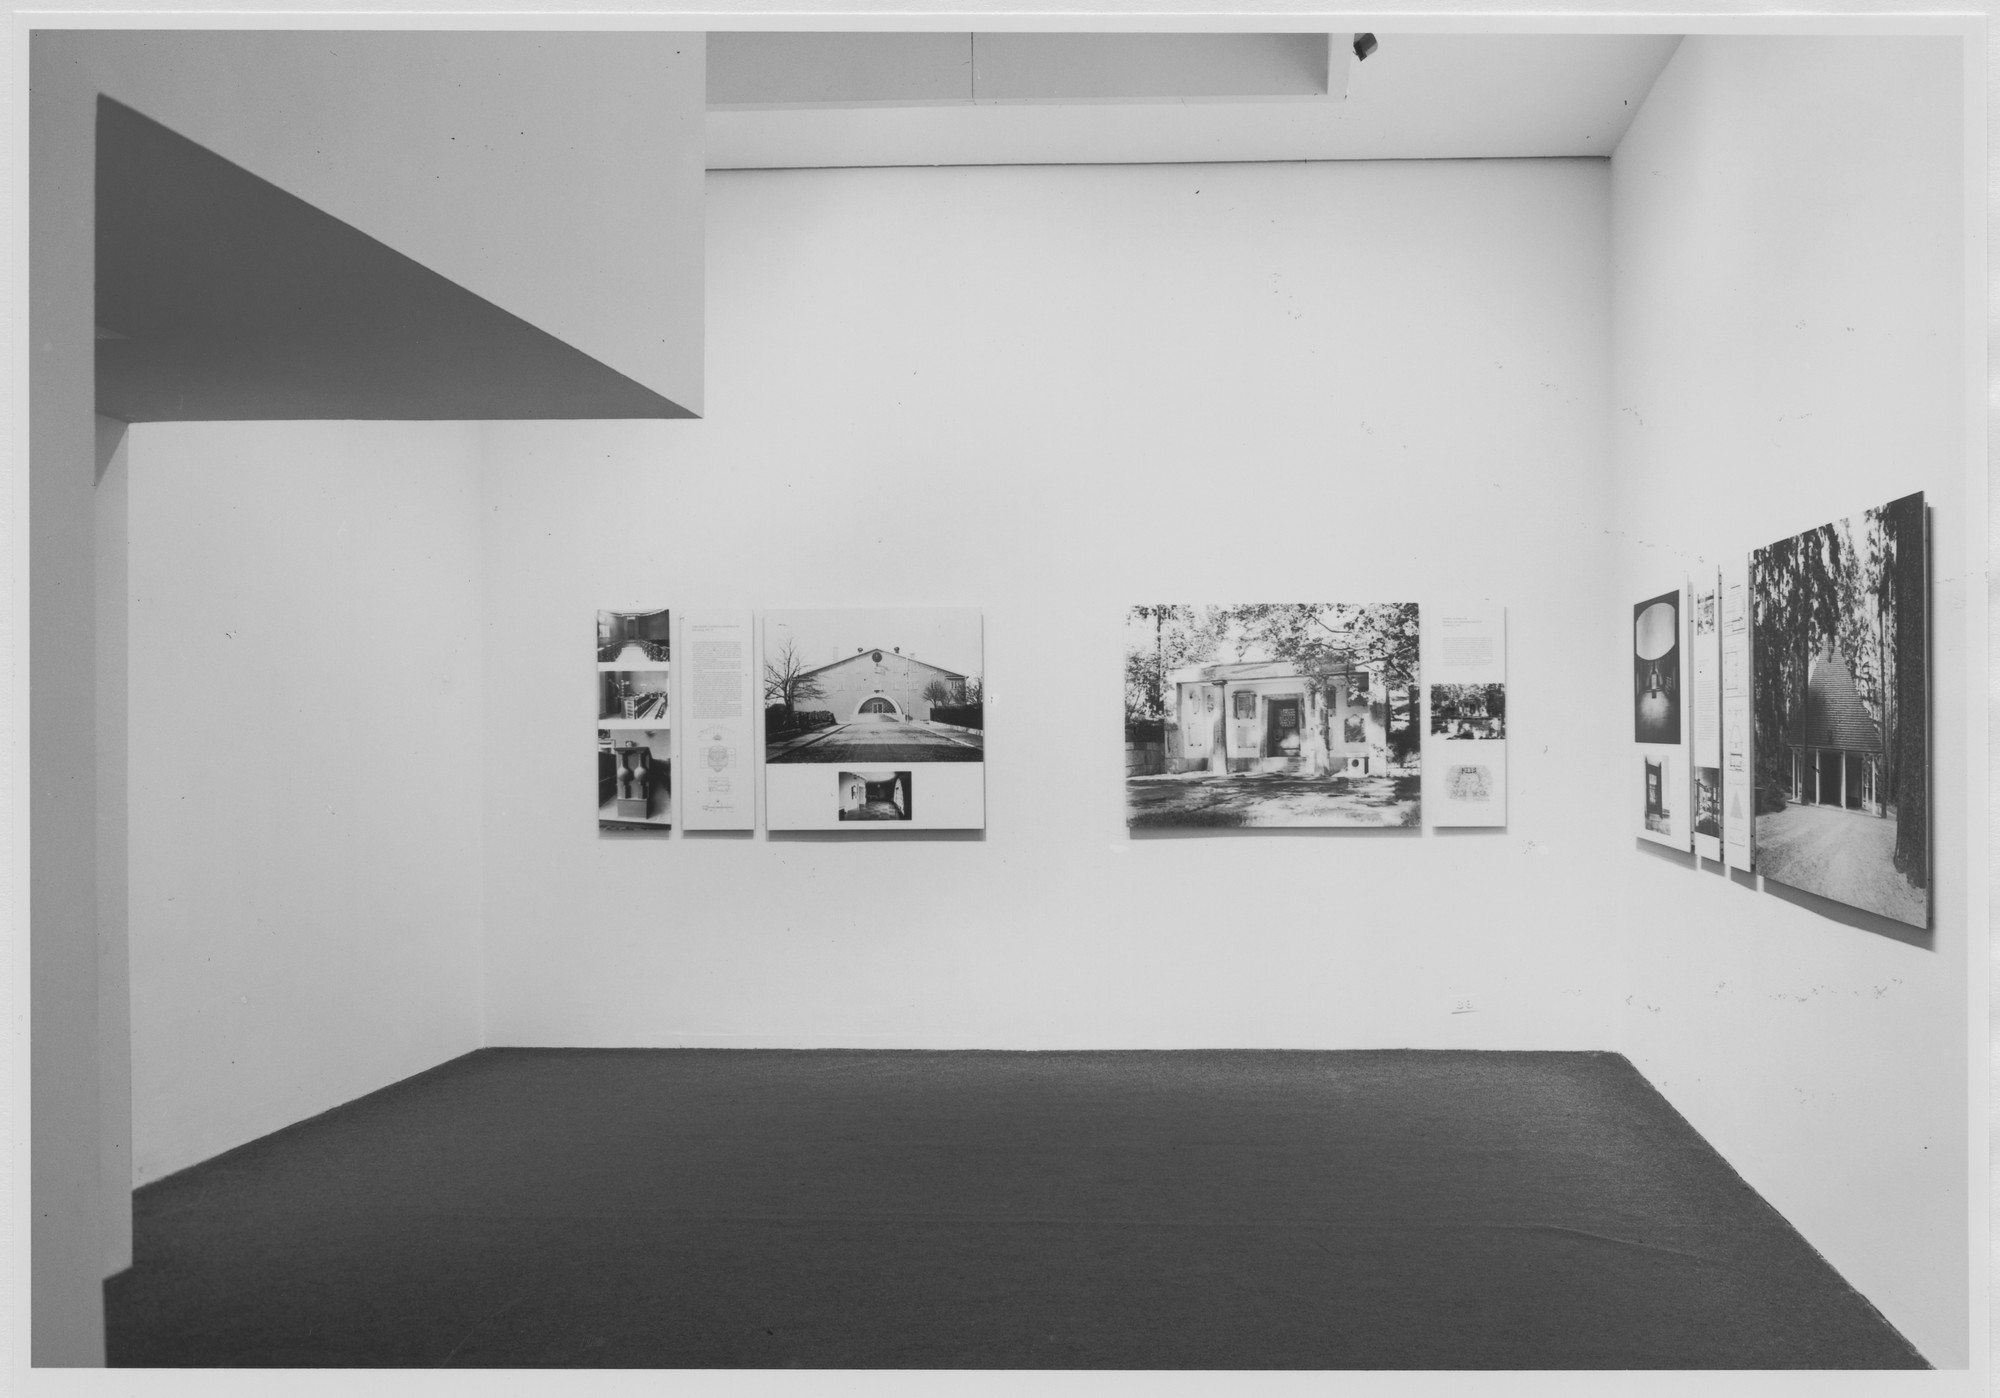 "Installation view of the exhibition, ""The Architecture of Gunnar Asplund"" June 30, 1978–October 1, 1978. Photographic Archive. The Museum of Modern Art Archives, New York. IN1218.1. Photograph by Katherine Keller."